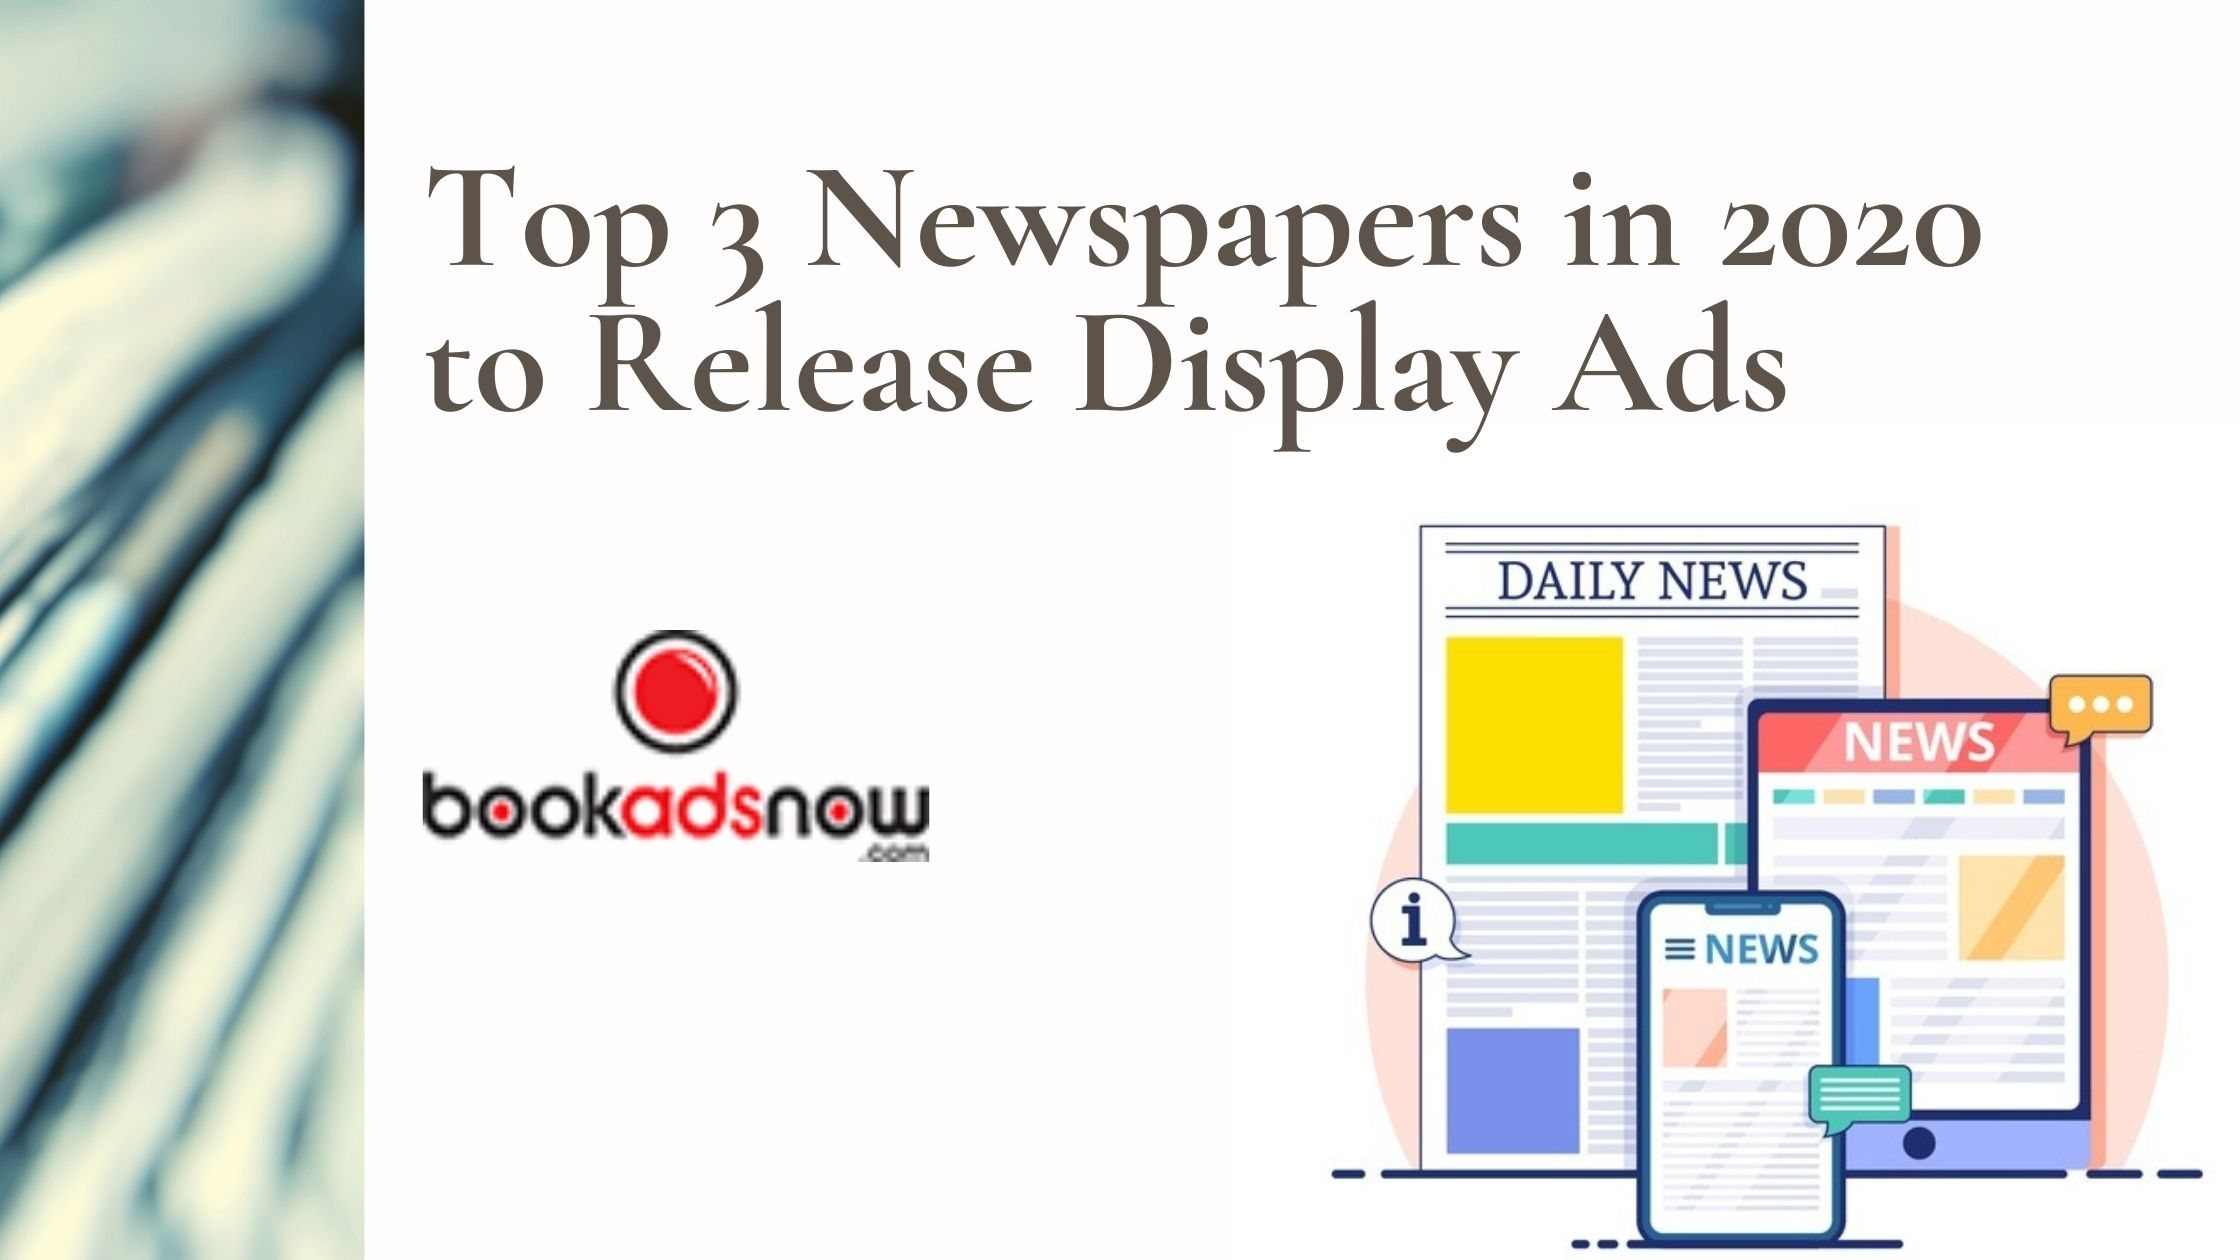 Release Display Ads